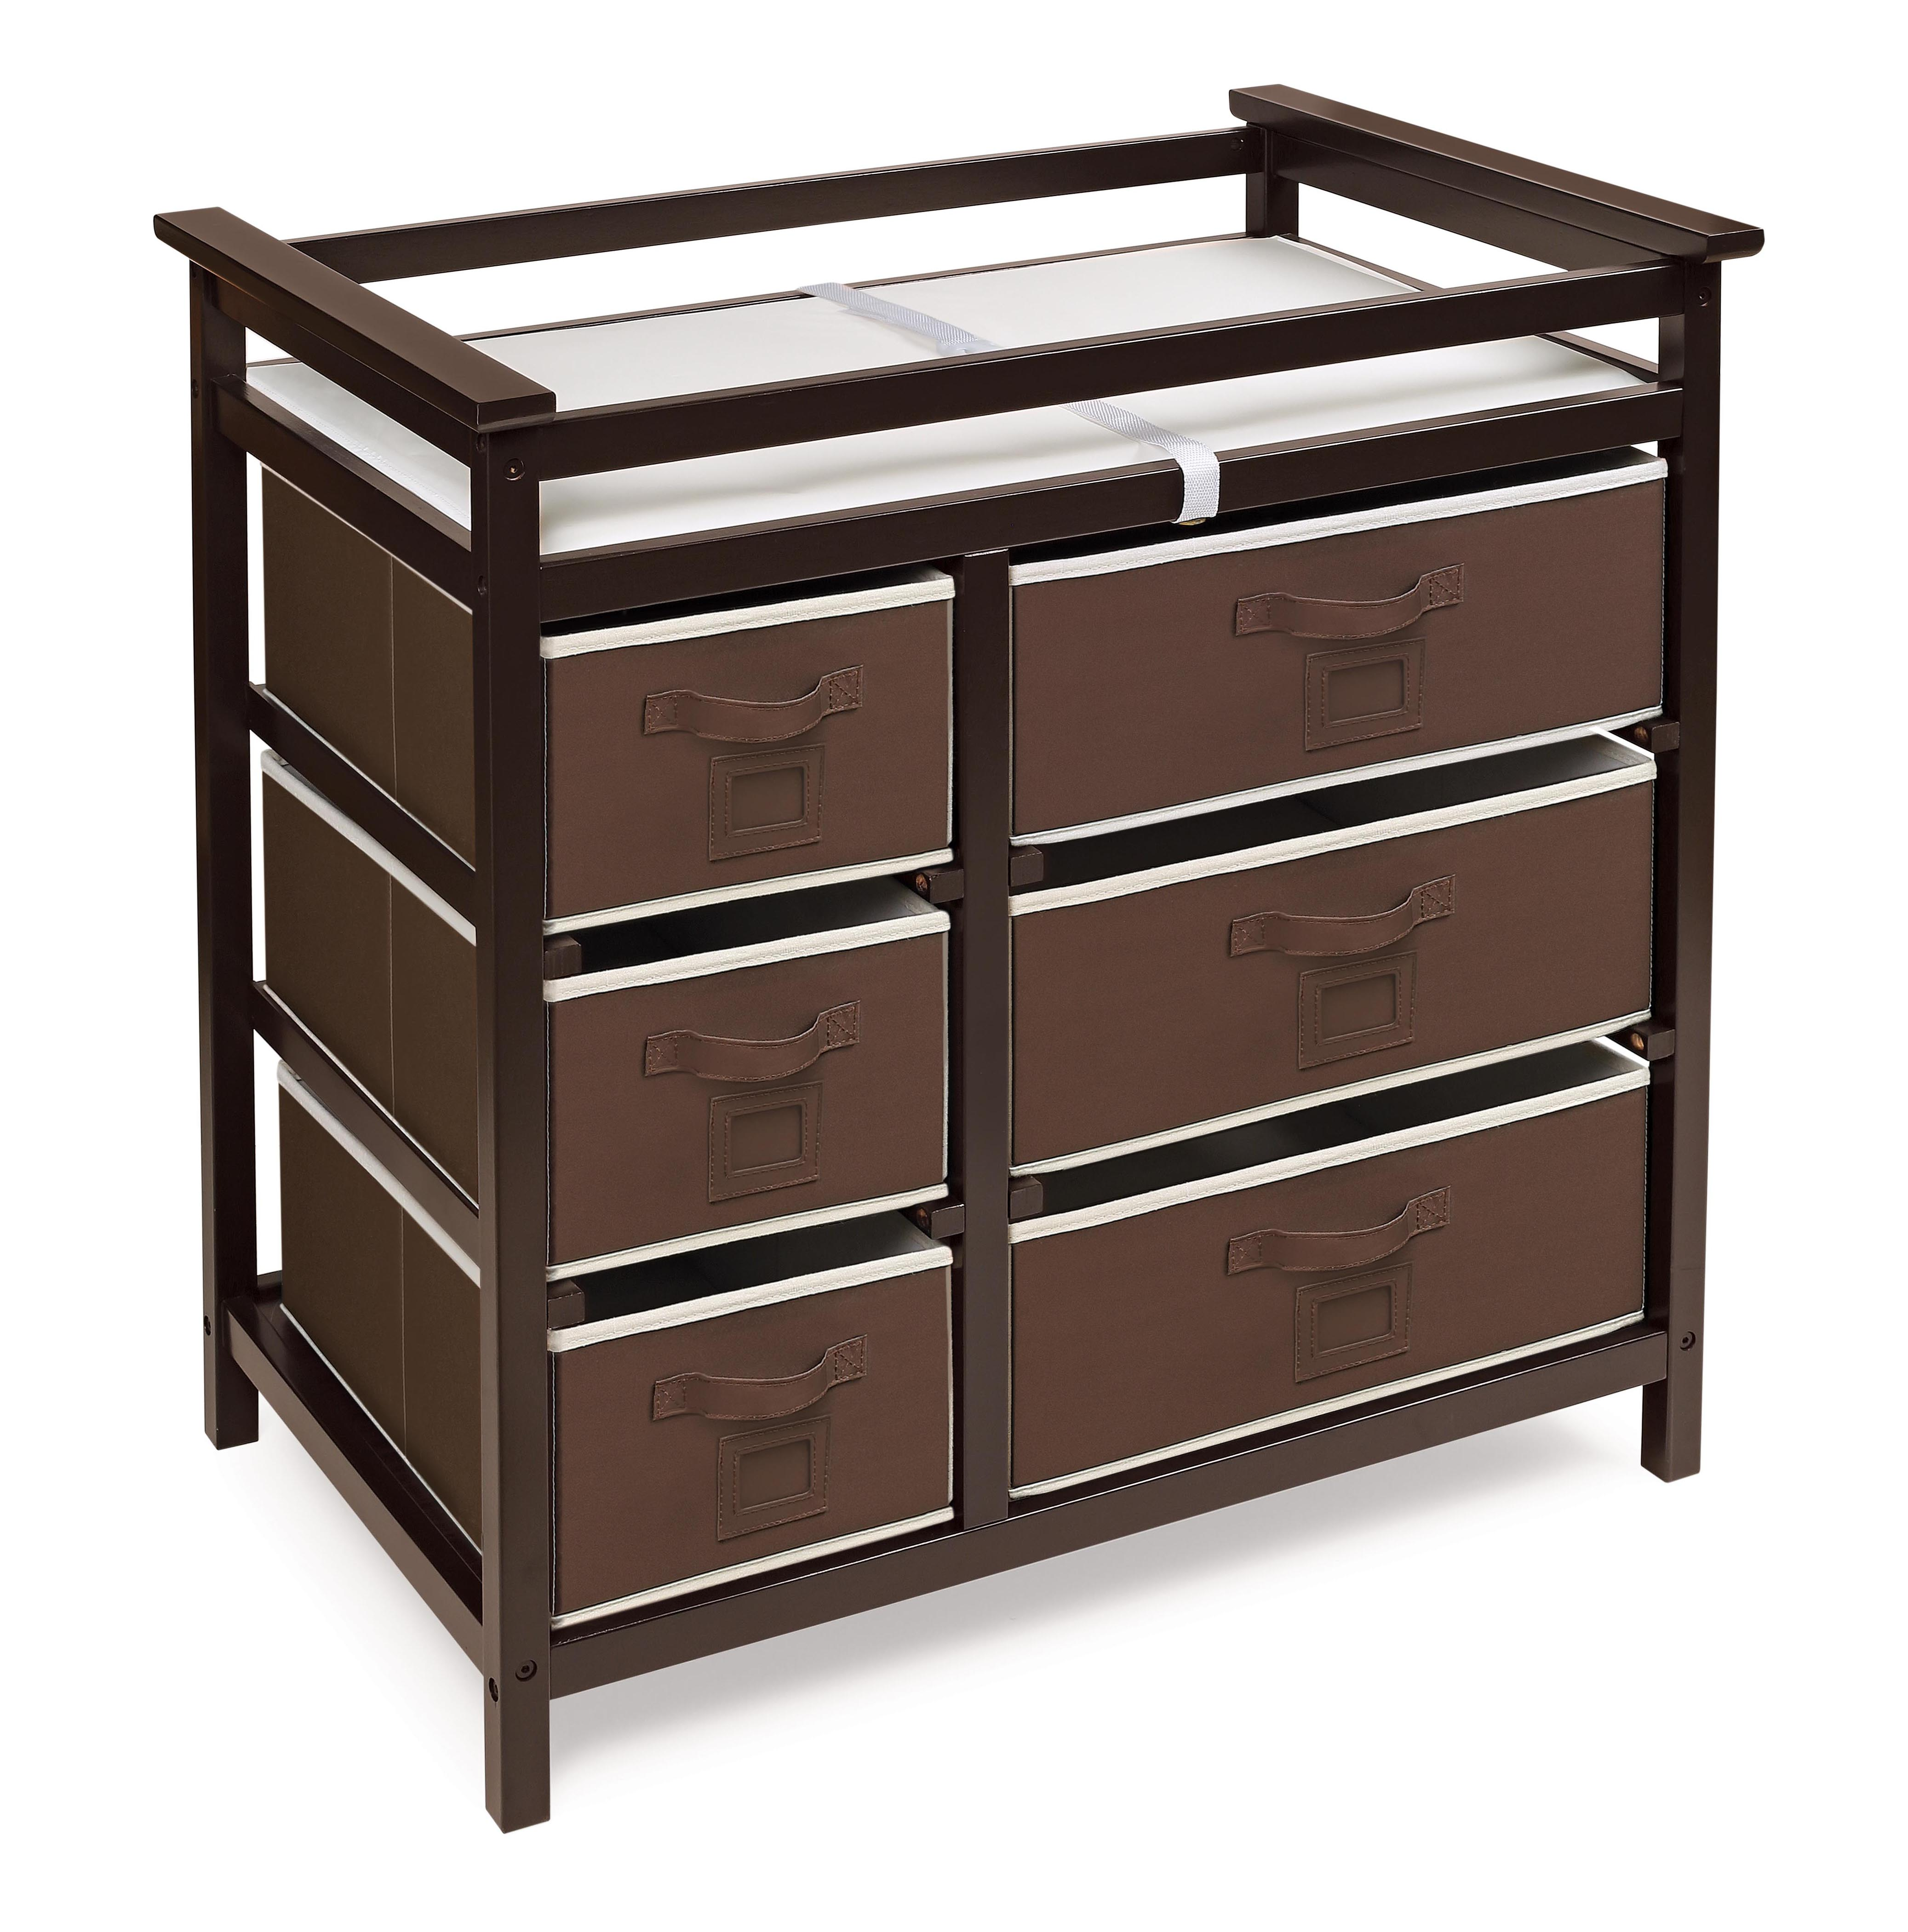 Badger Basket Modern Baby Changing Table With Six Baskets   Espresso